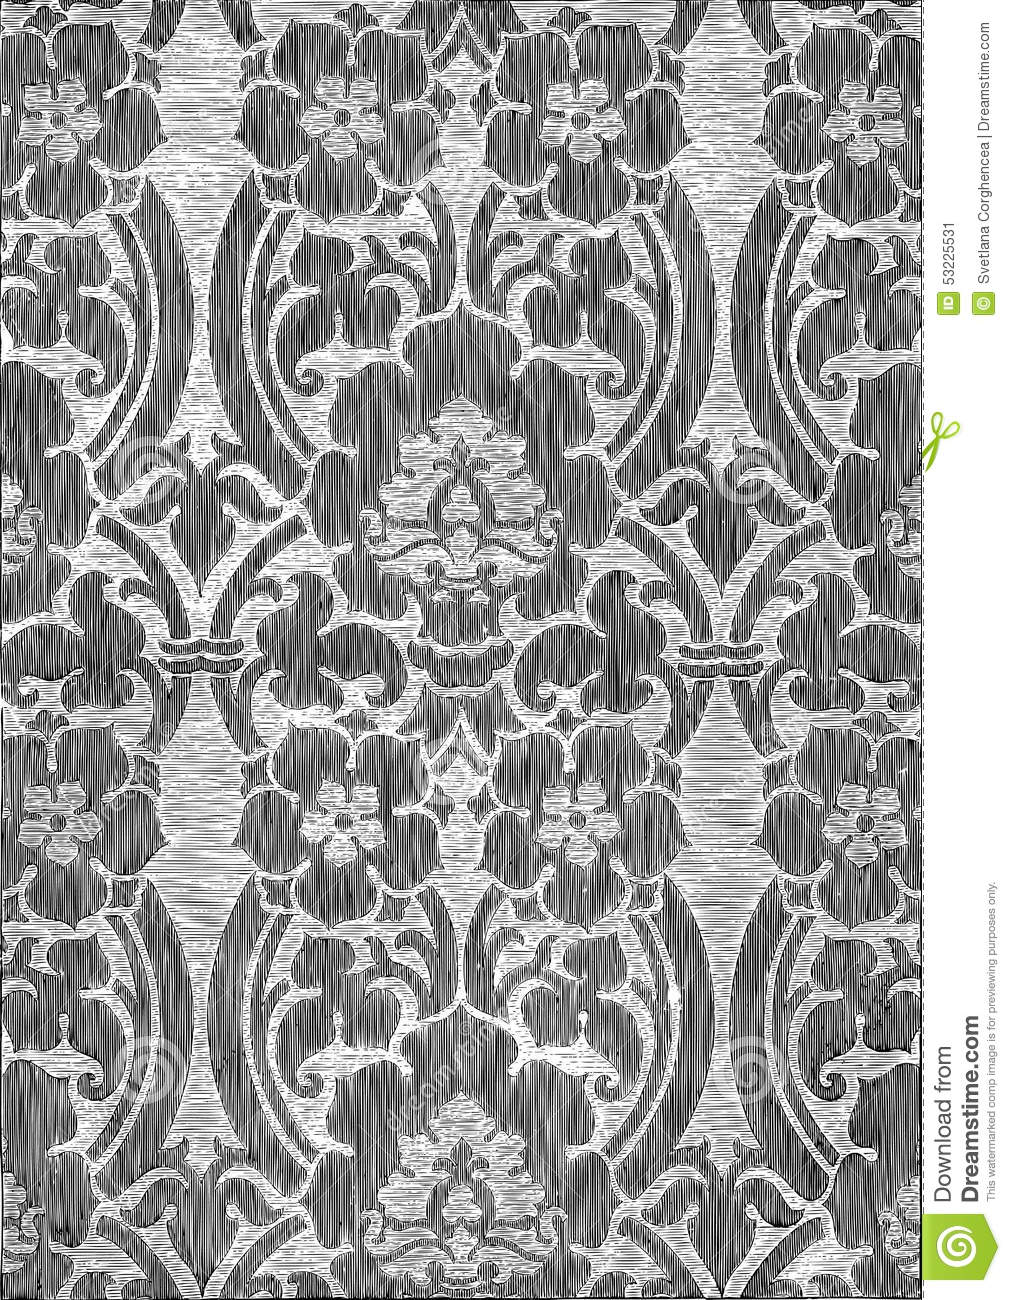 ea5d091eb90 Black And White Abstract Striped Floral Pattern Vintage Background ...